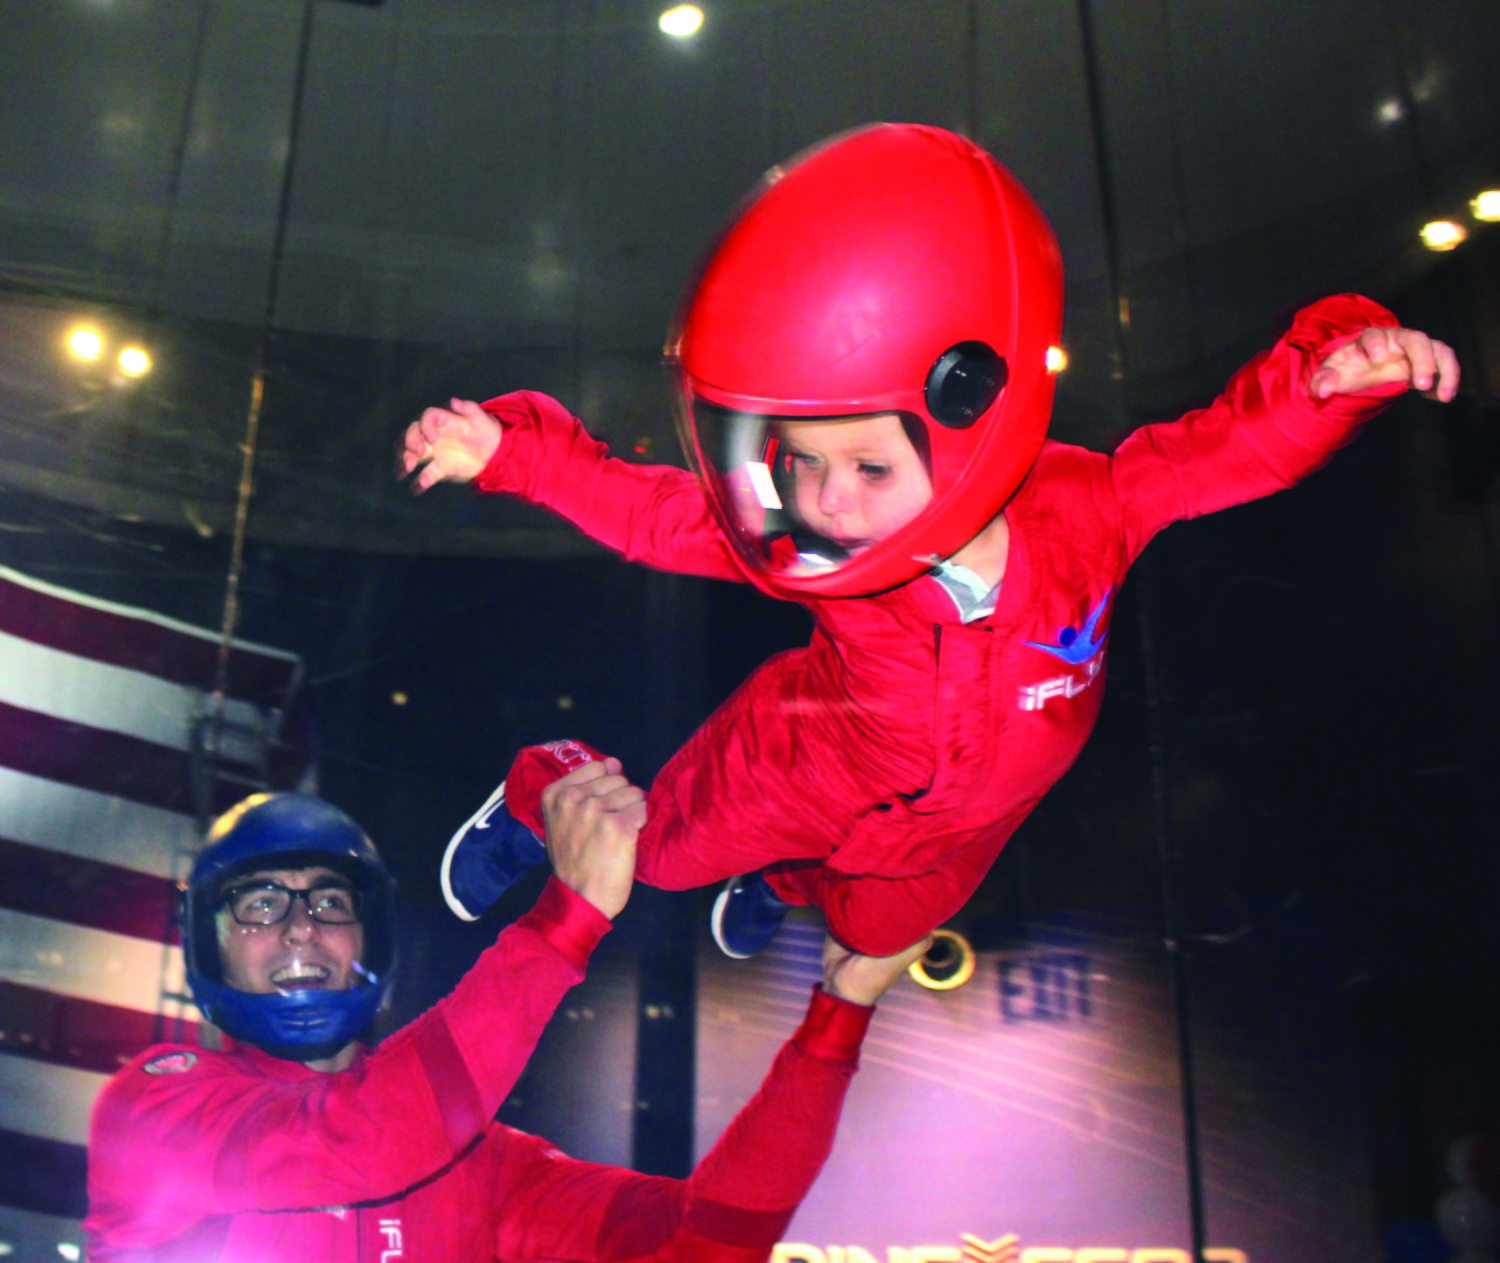 iFLY Indoor Skydiving opens for family fun